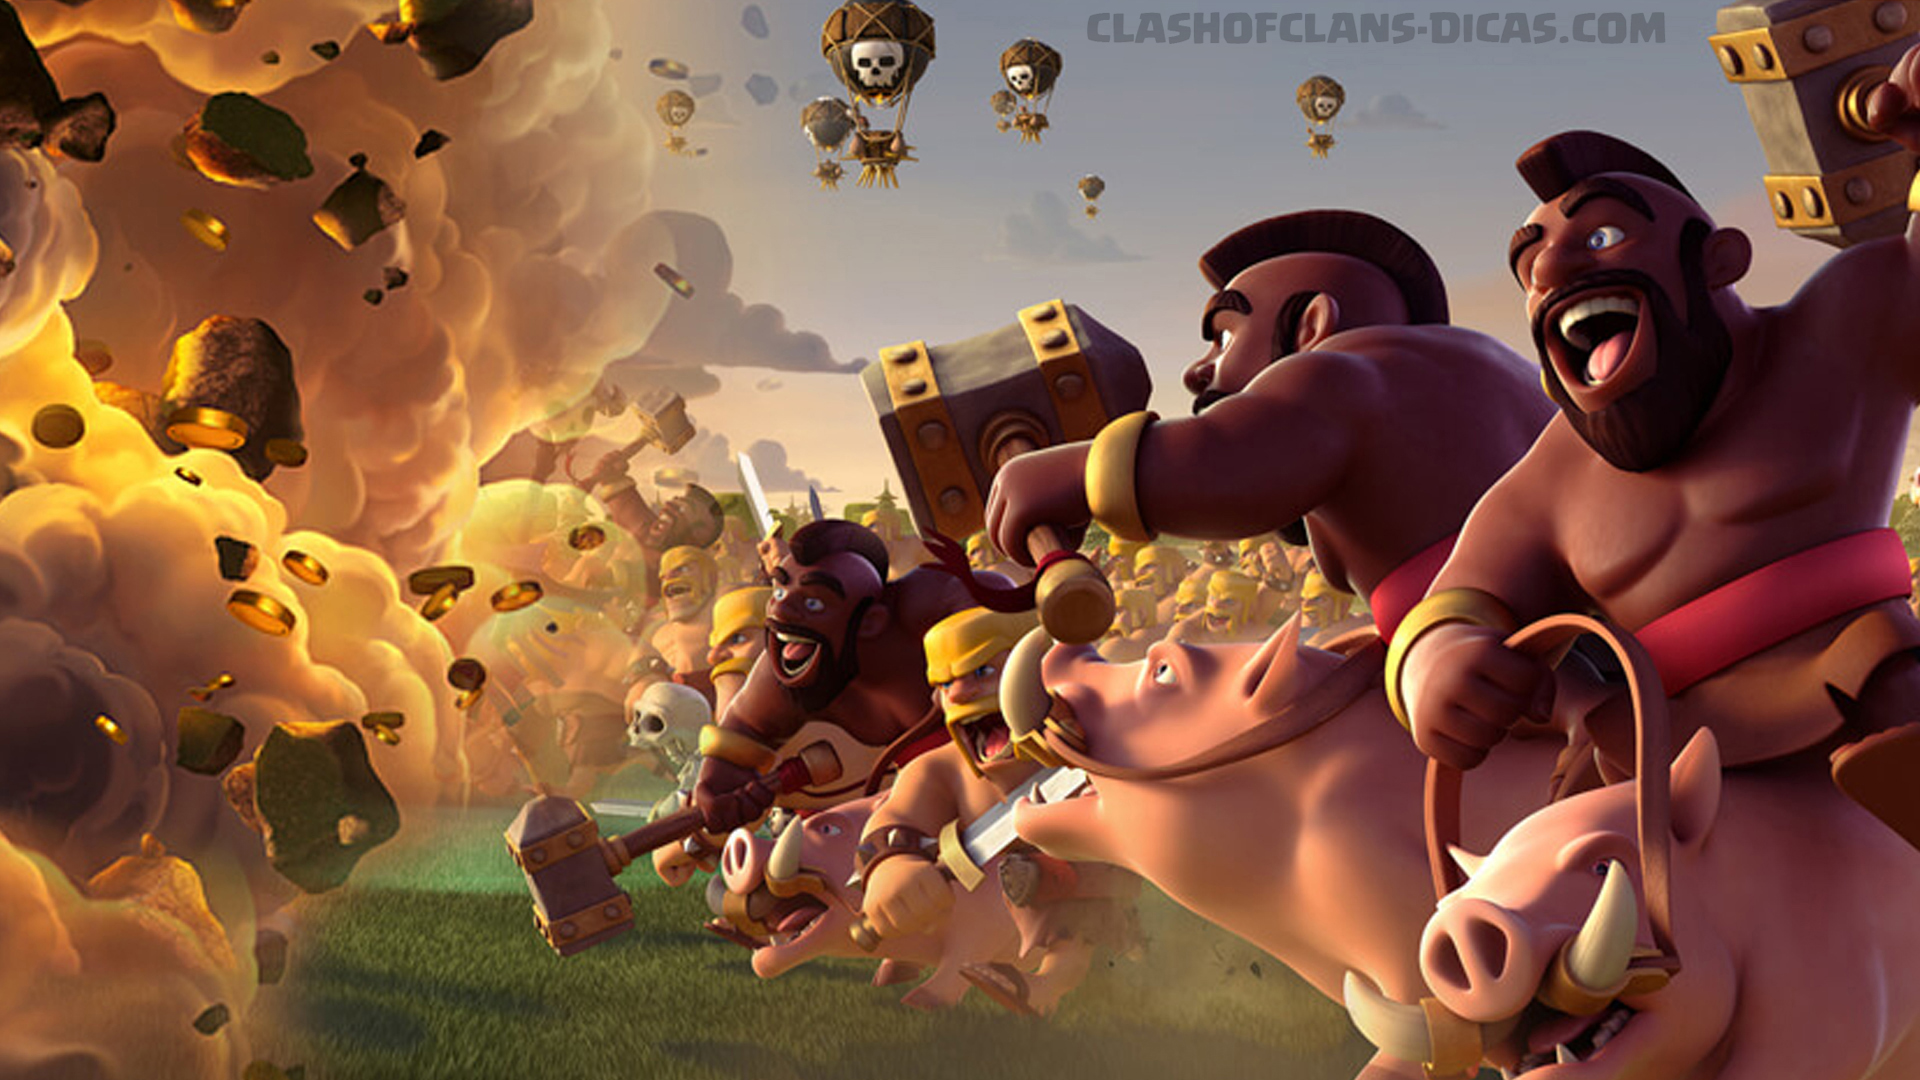 Wallpaper Of Clash Of Clans: Clash Of Clans Images Wallpapers (43 Wallpapers